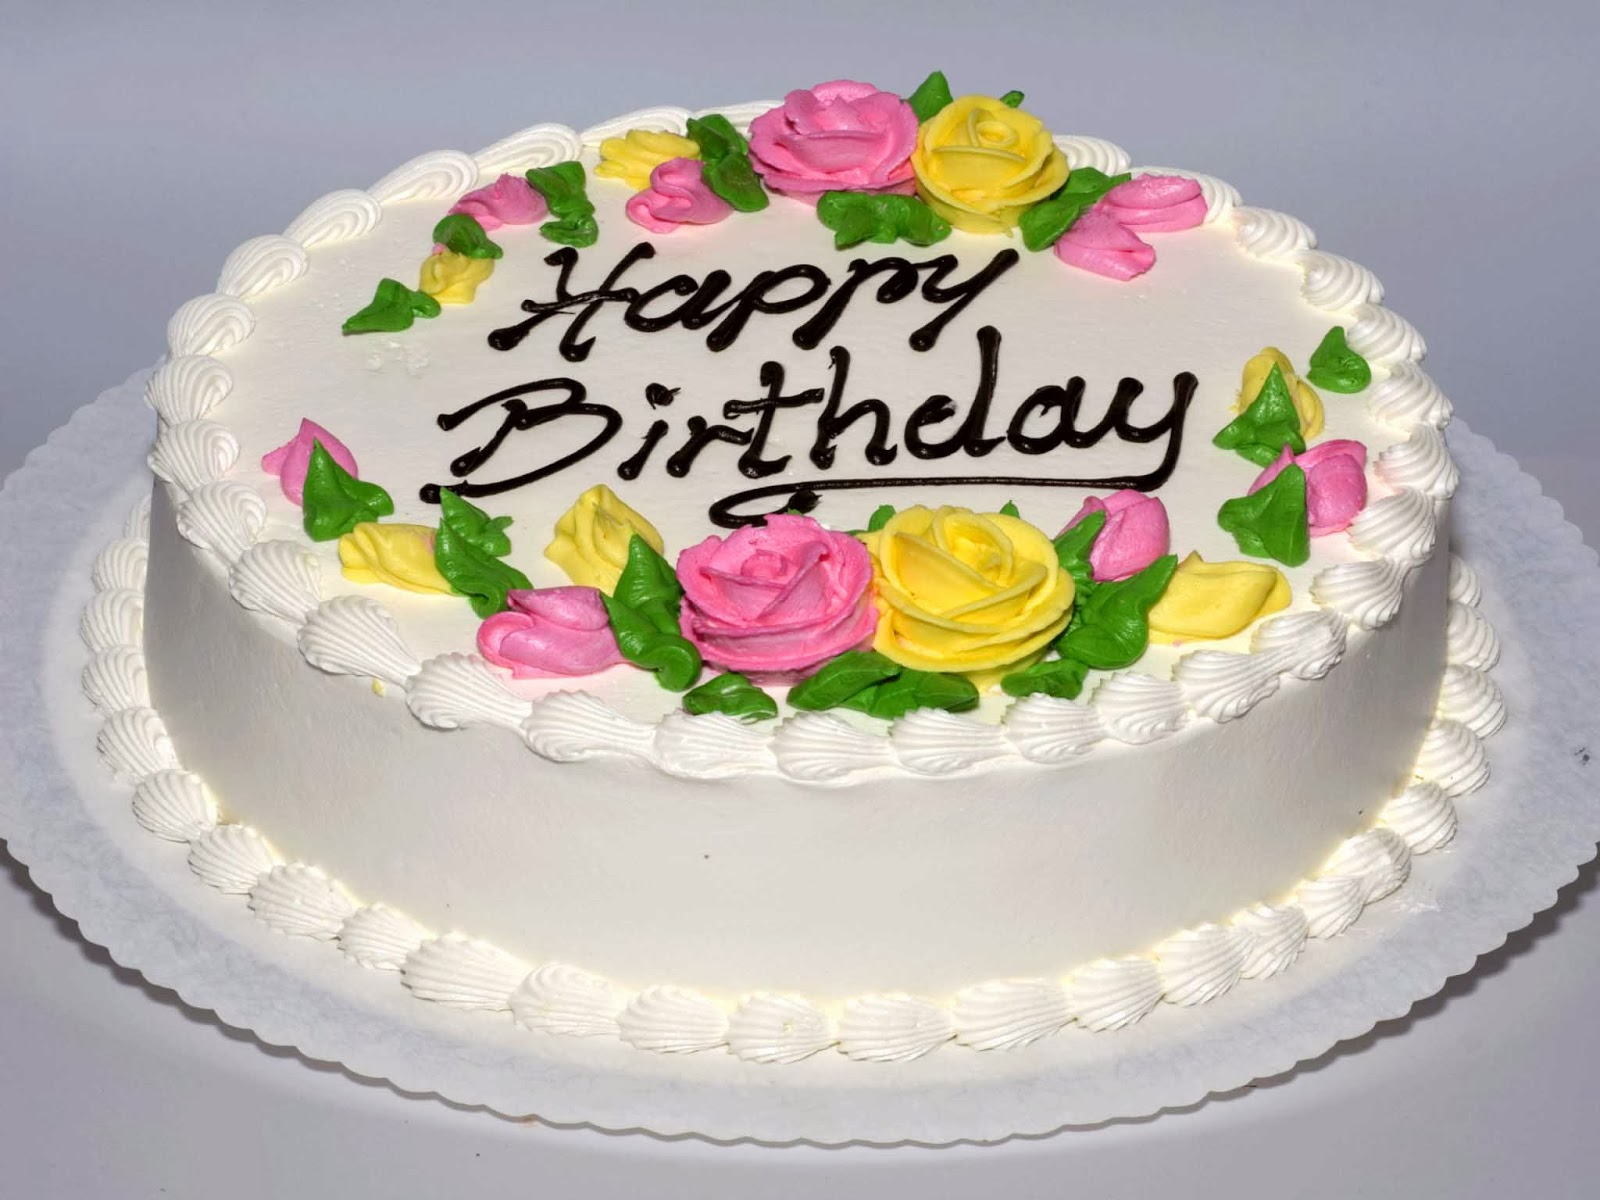 Cake Images For Birthday Wishes : Lovable Images: Happy Birthday Greetings free download ...